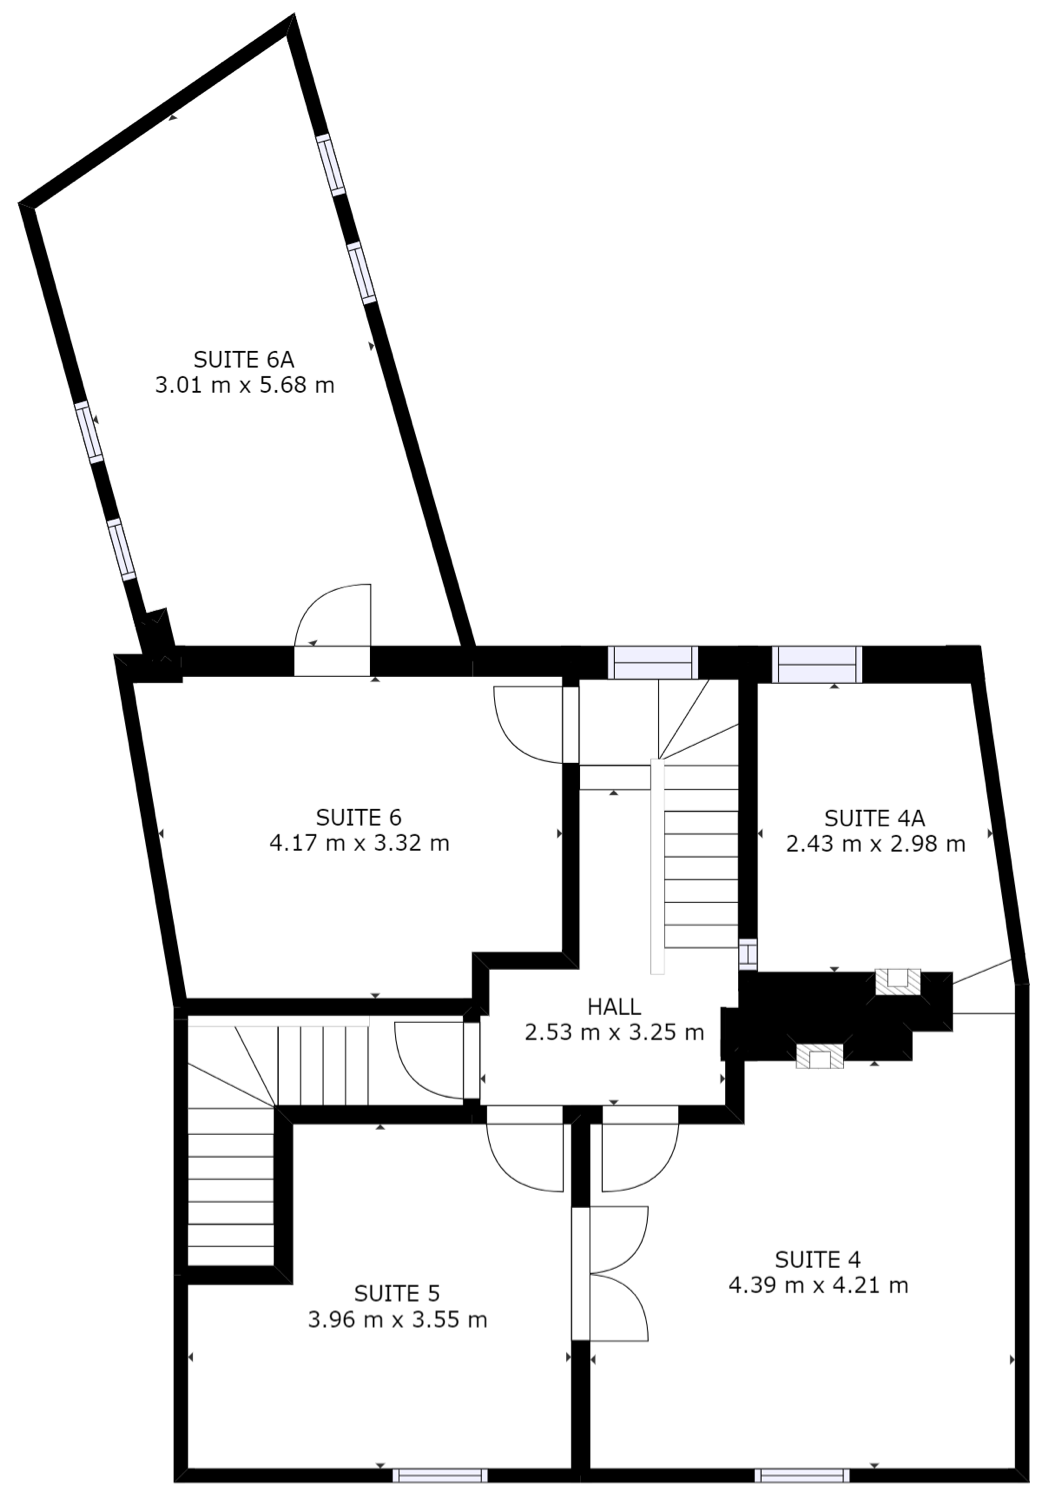 Merchant House First Floor Plan and offices suite layout.